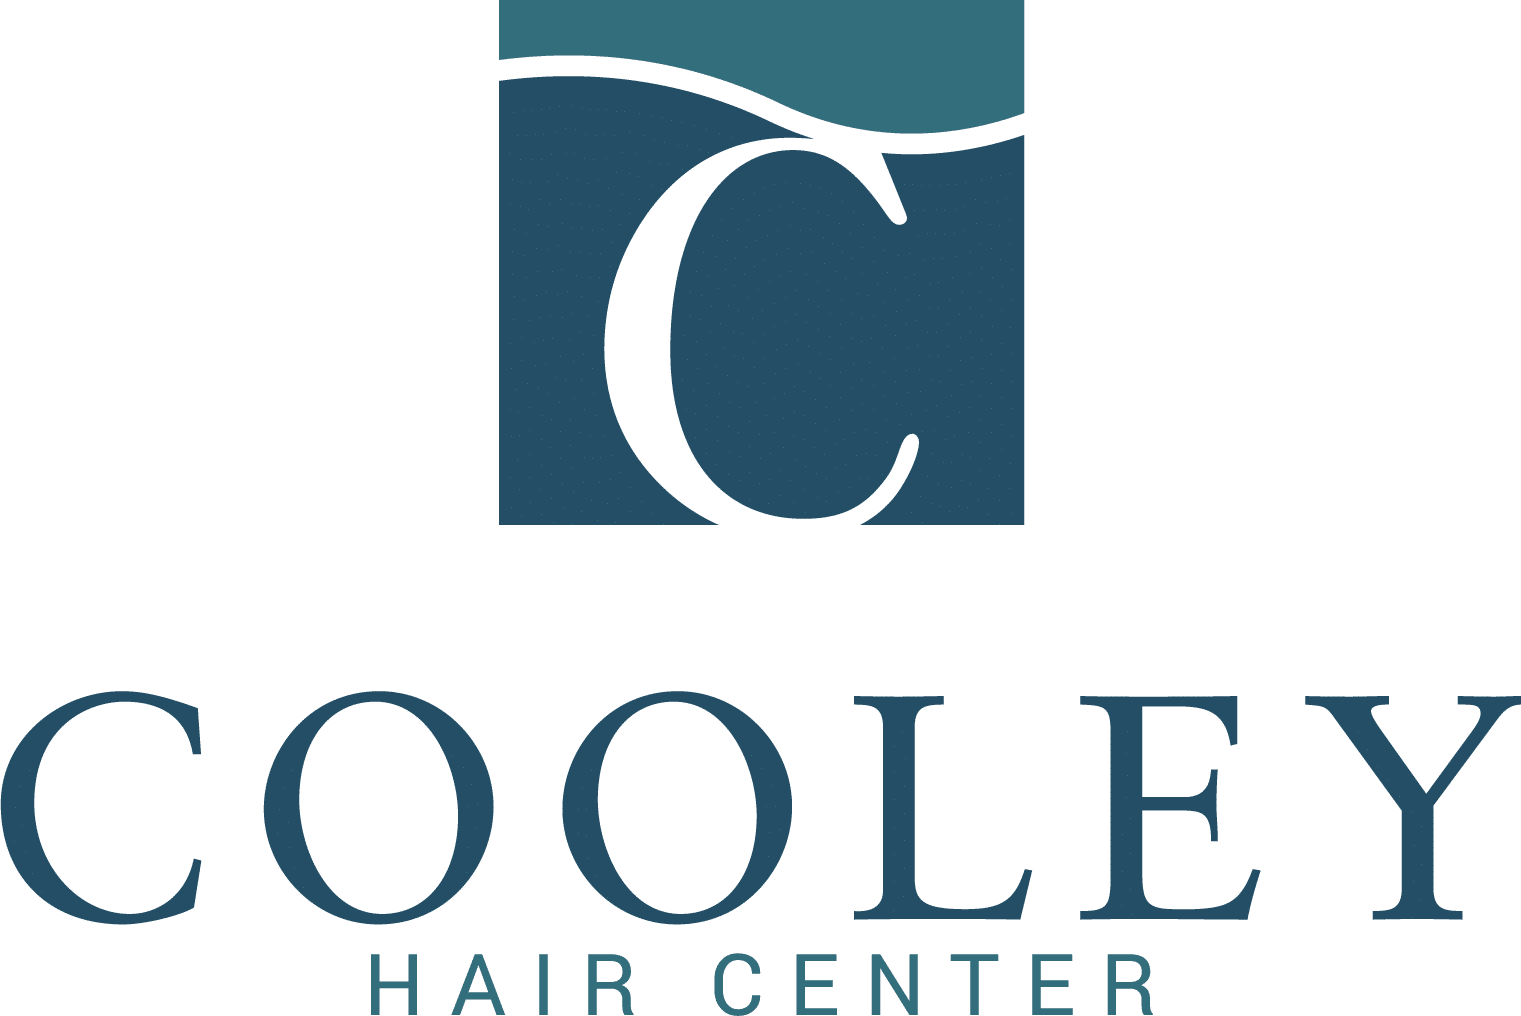 Cooley Hair Center | Cooley Hair Center, Jerry E. Cooley M.D. | Surgical Hair Restoration | Charlotte, NC